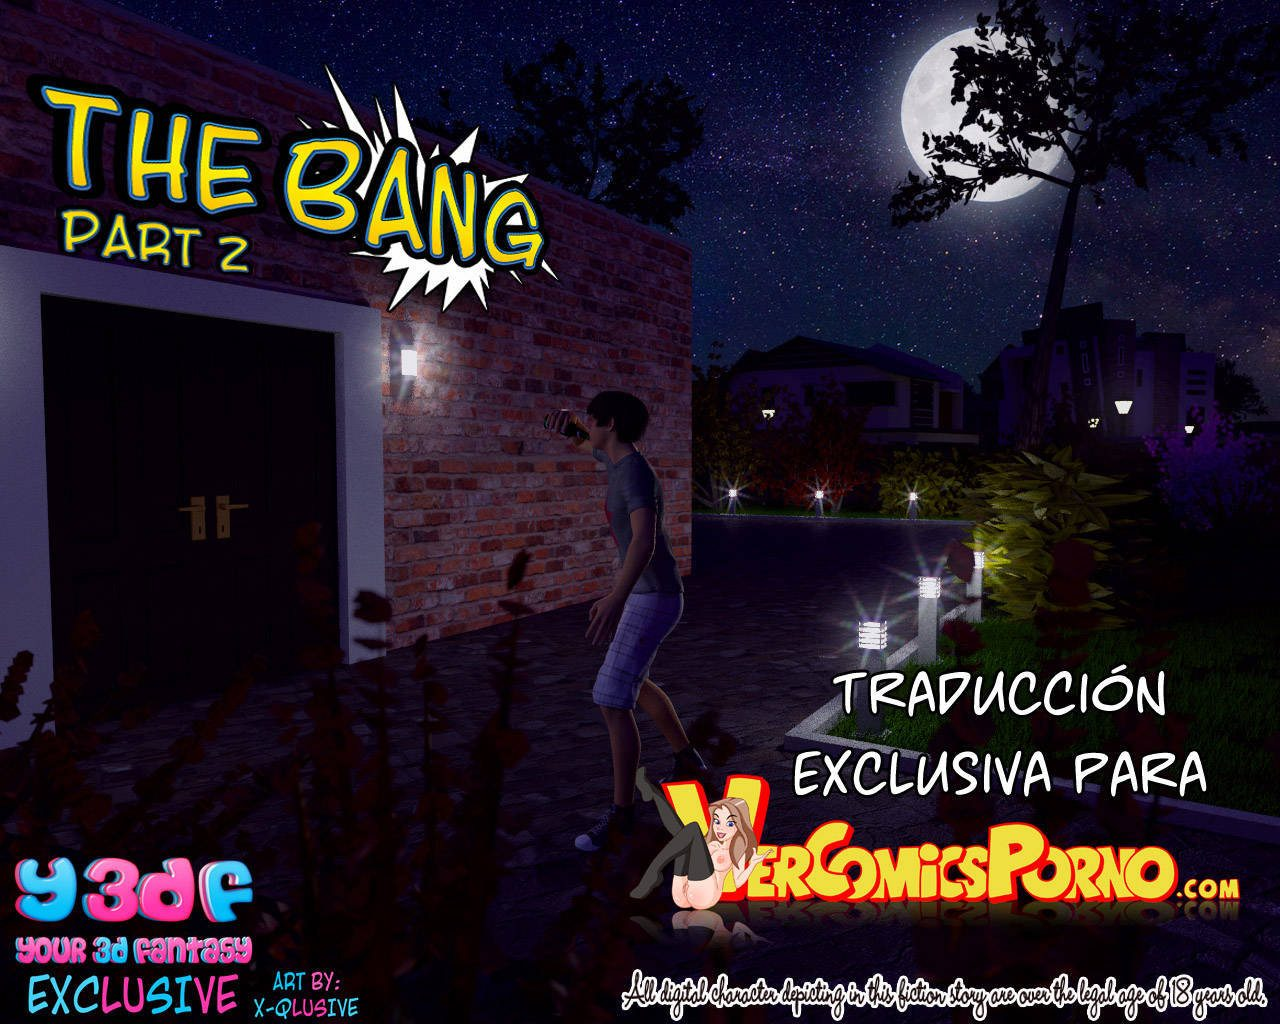 the-bang-2-exclusivo-en-proceso 1